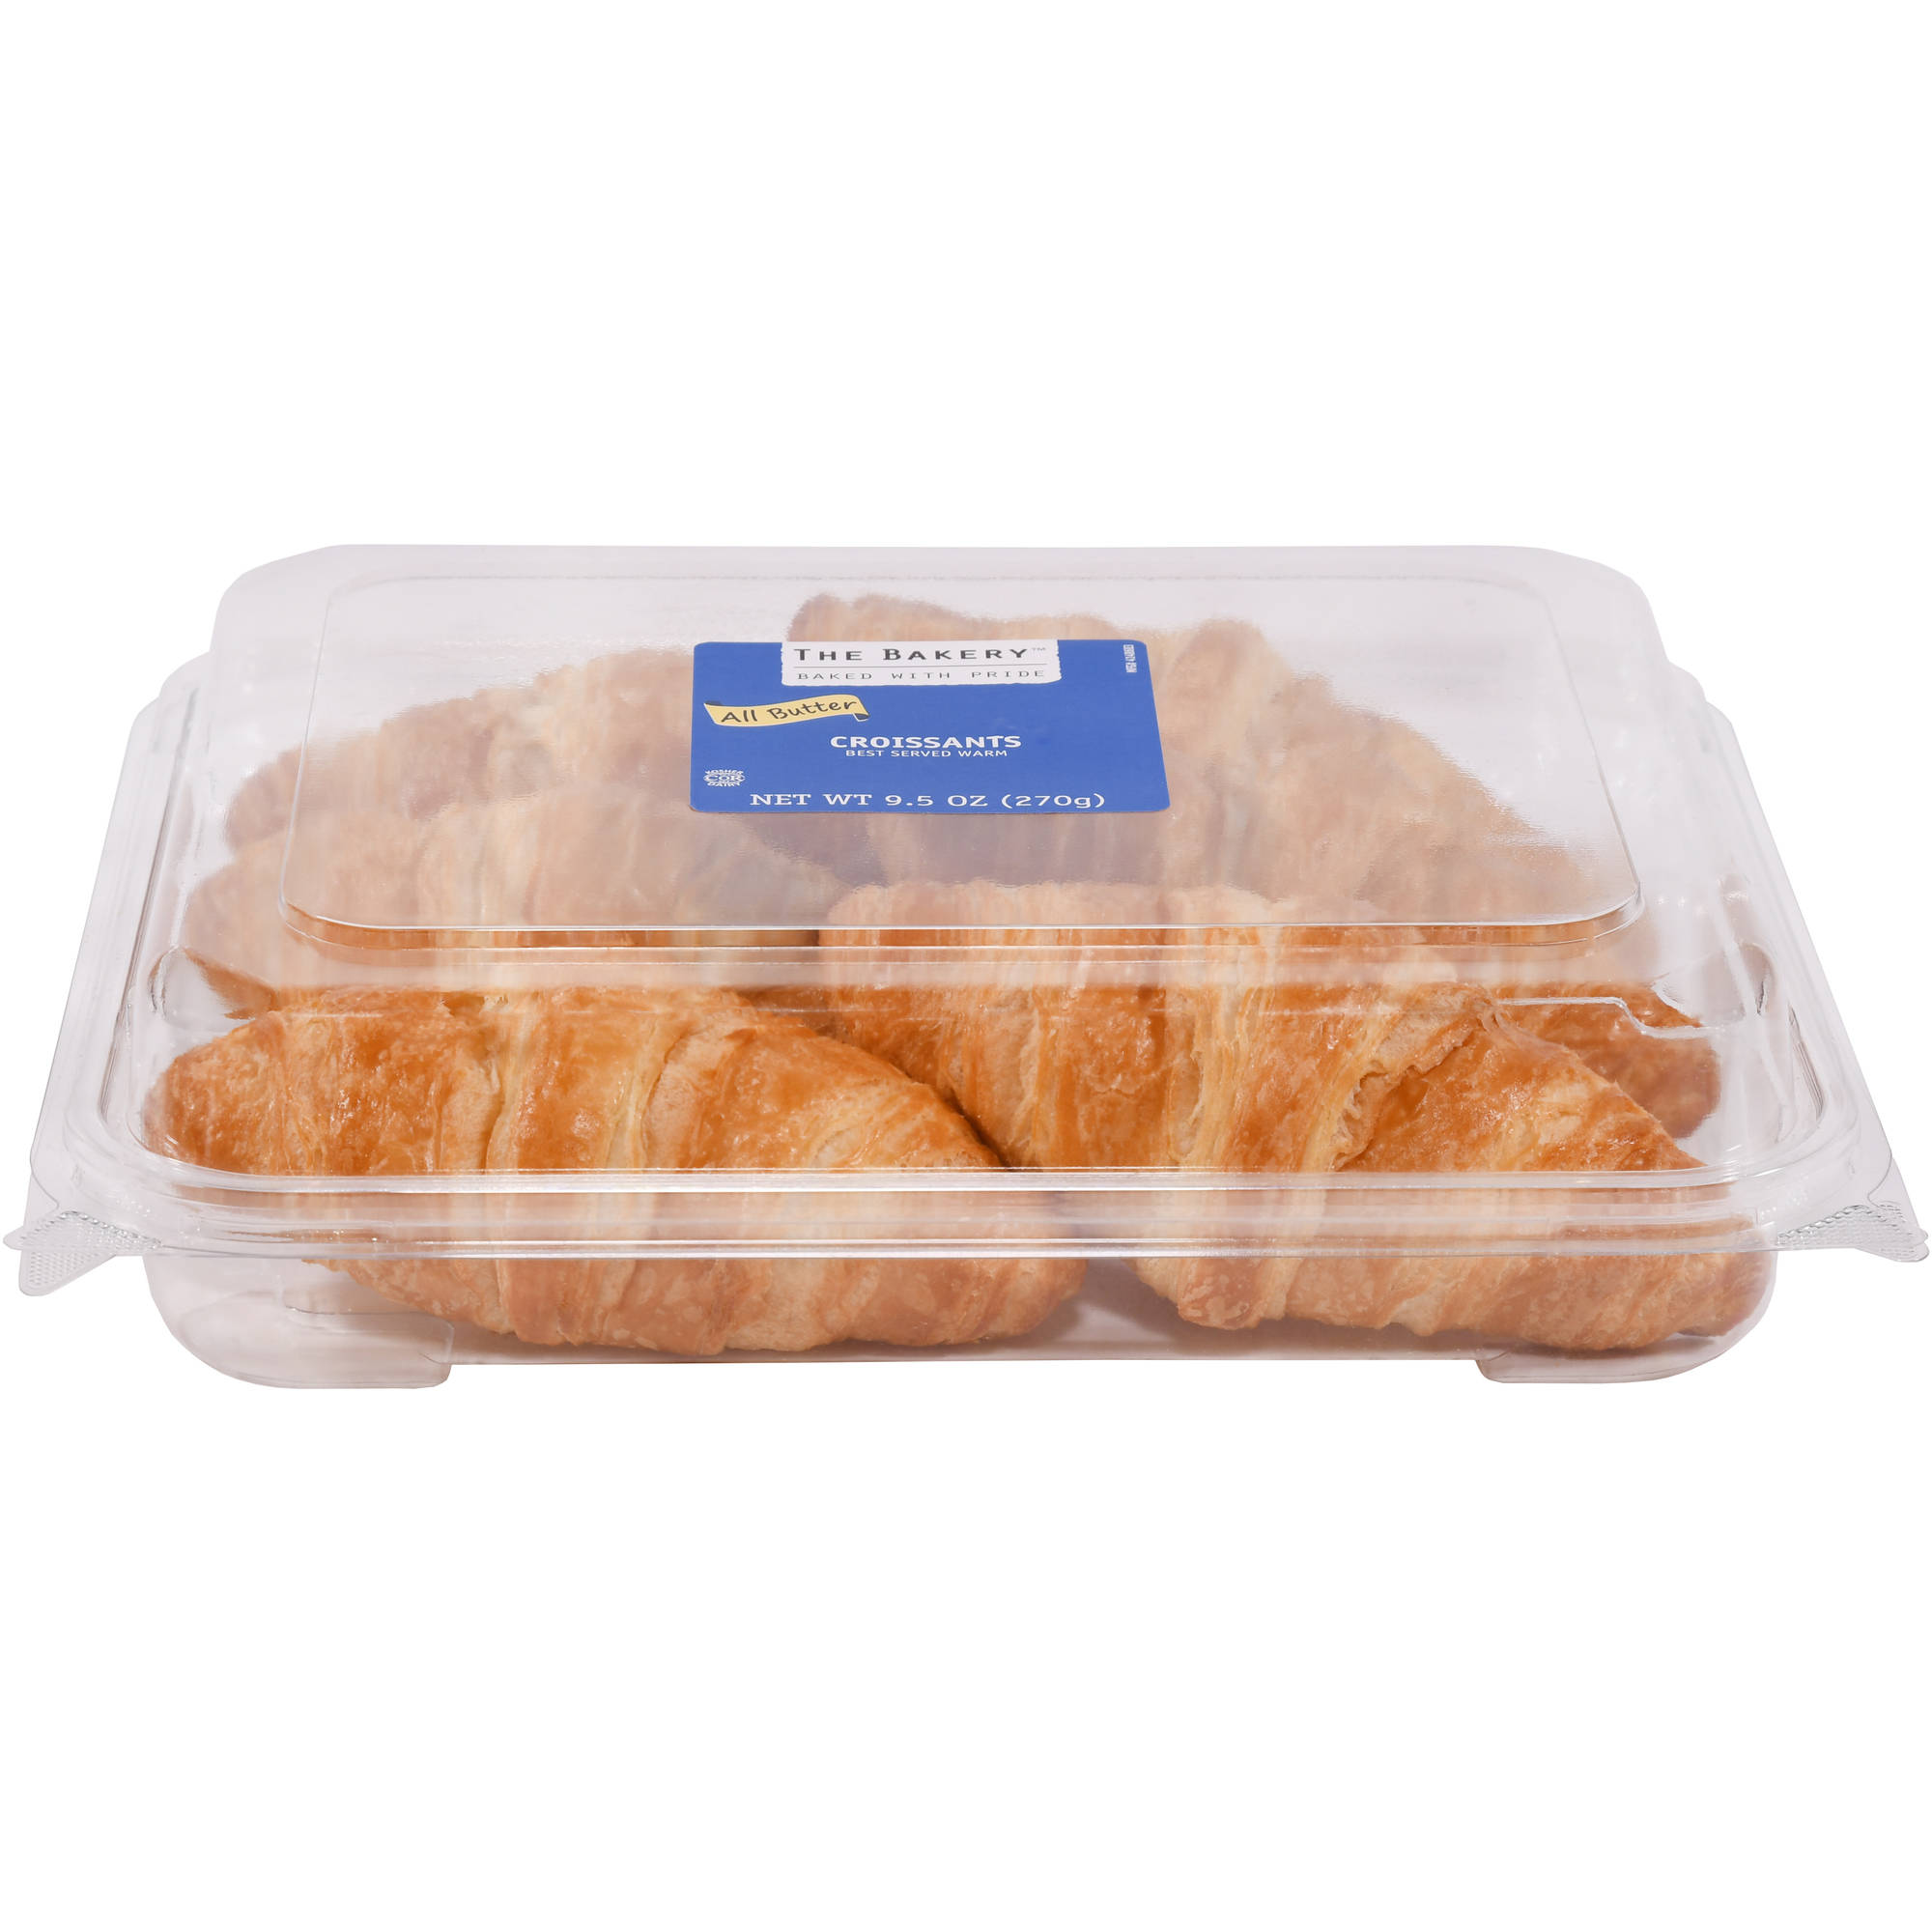 The Bakery at Walmart Butter Croissants, 6 ct